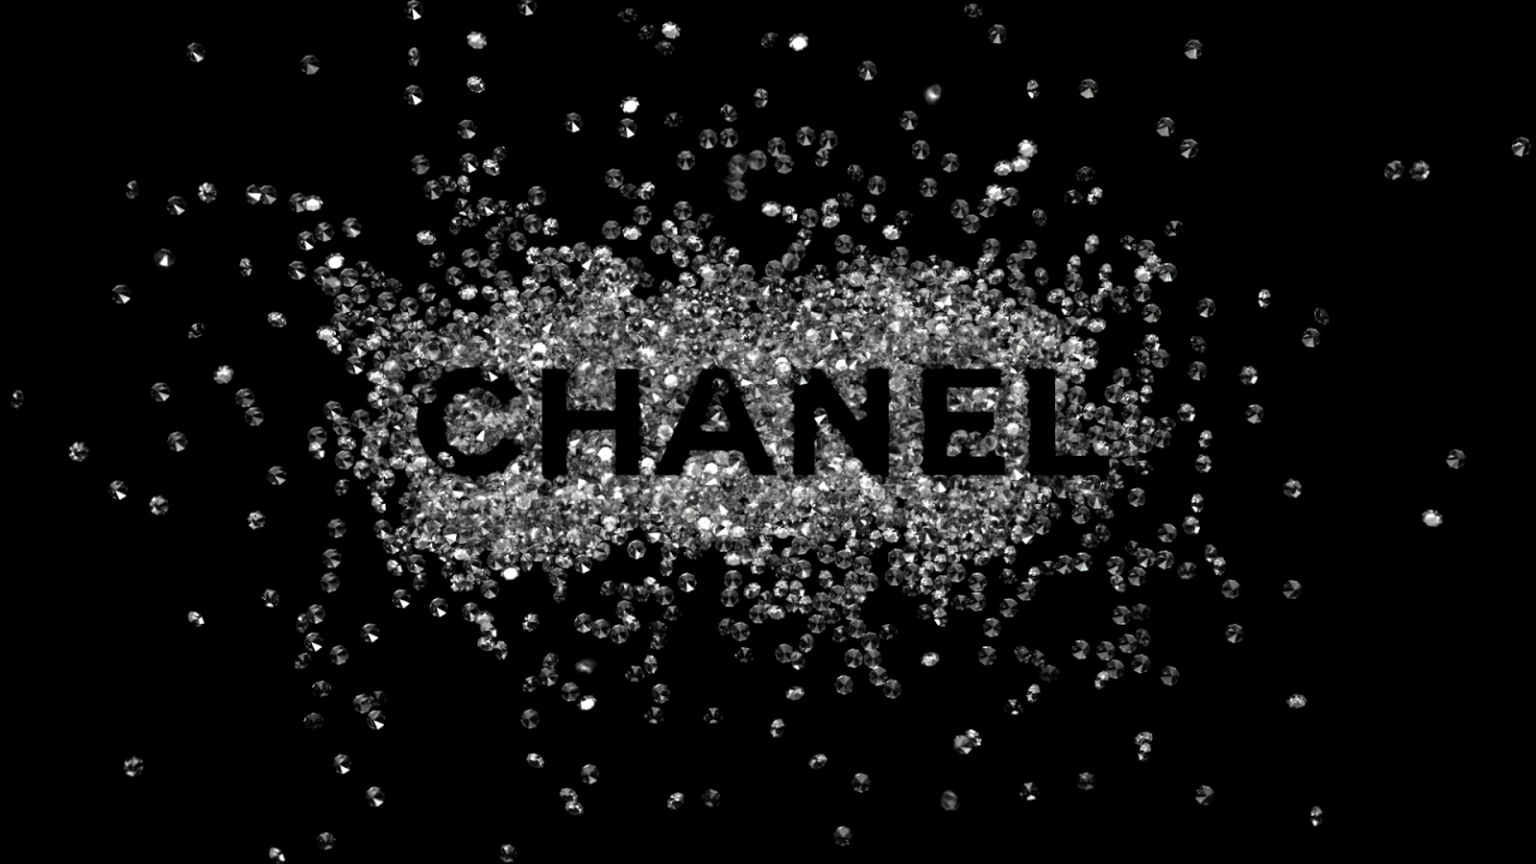 Free Download Wallpapers For Chanel Logo Wallpaper 1600x900 For Your Desktop Mobile Tablet Explore 48 Chanel Wallpaper For Desktop Chanel Logo Wallpaper Coco Chanel Logo Wallpaper Chanel Wallpaper For Iphone Make a logo with turbologo online logo creator. chanel logo wallpaper 1600x900